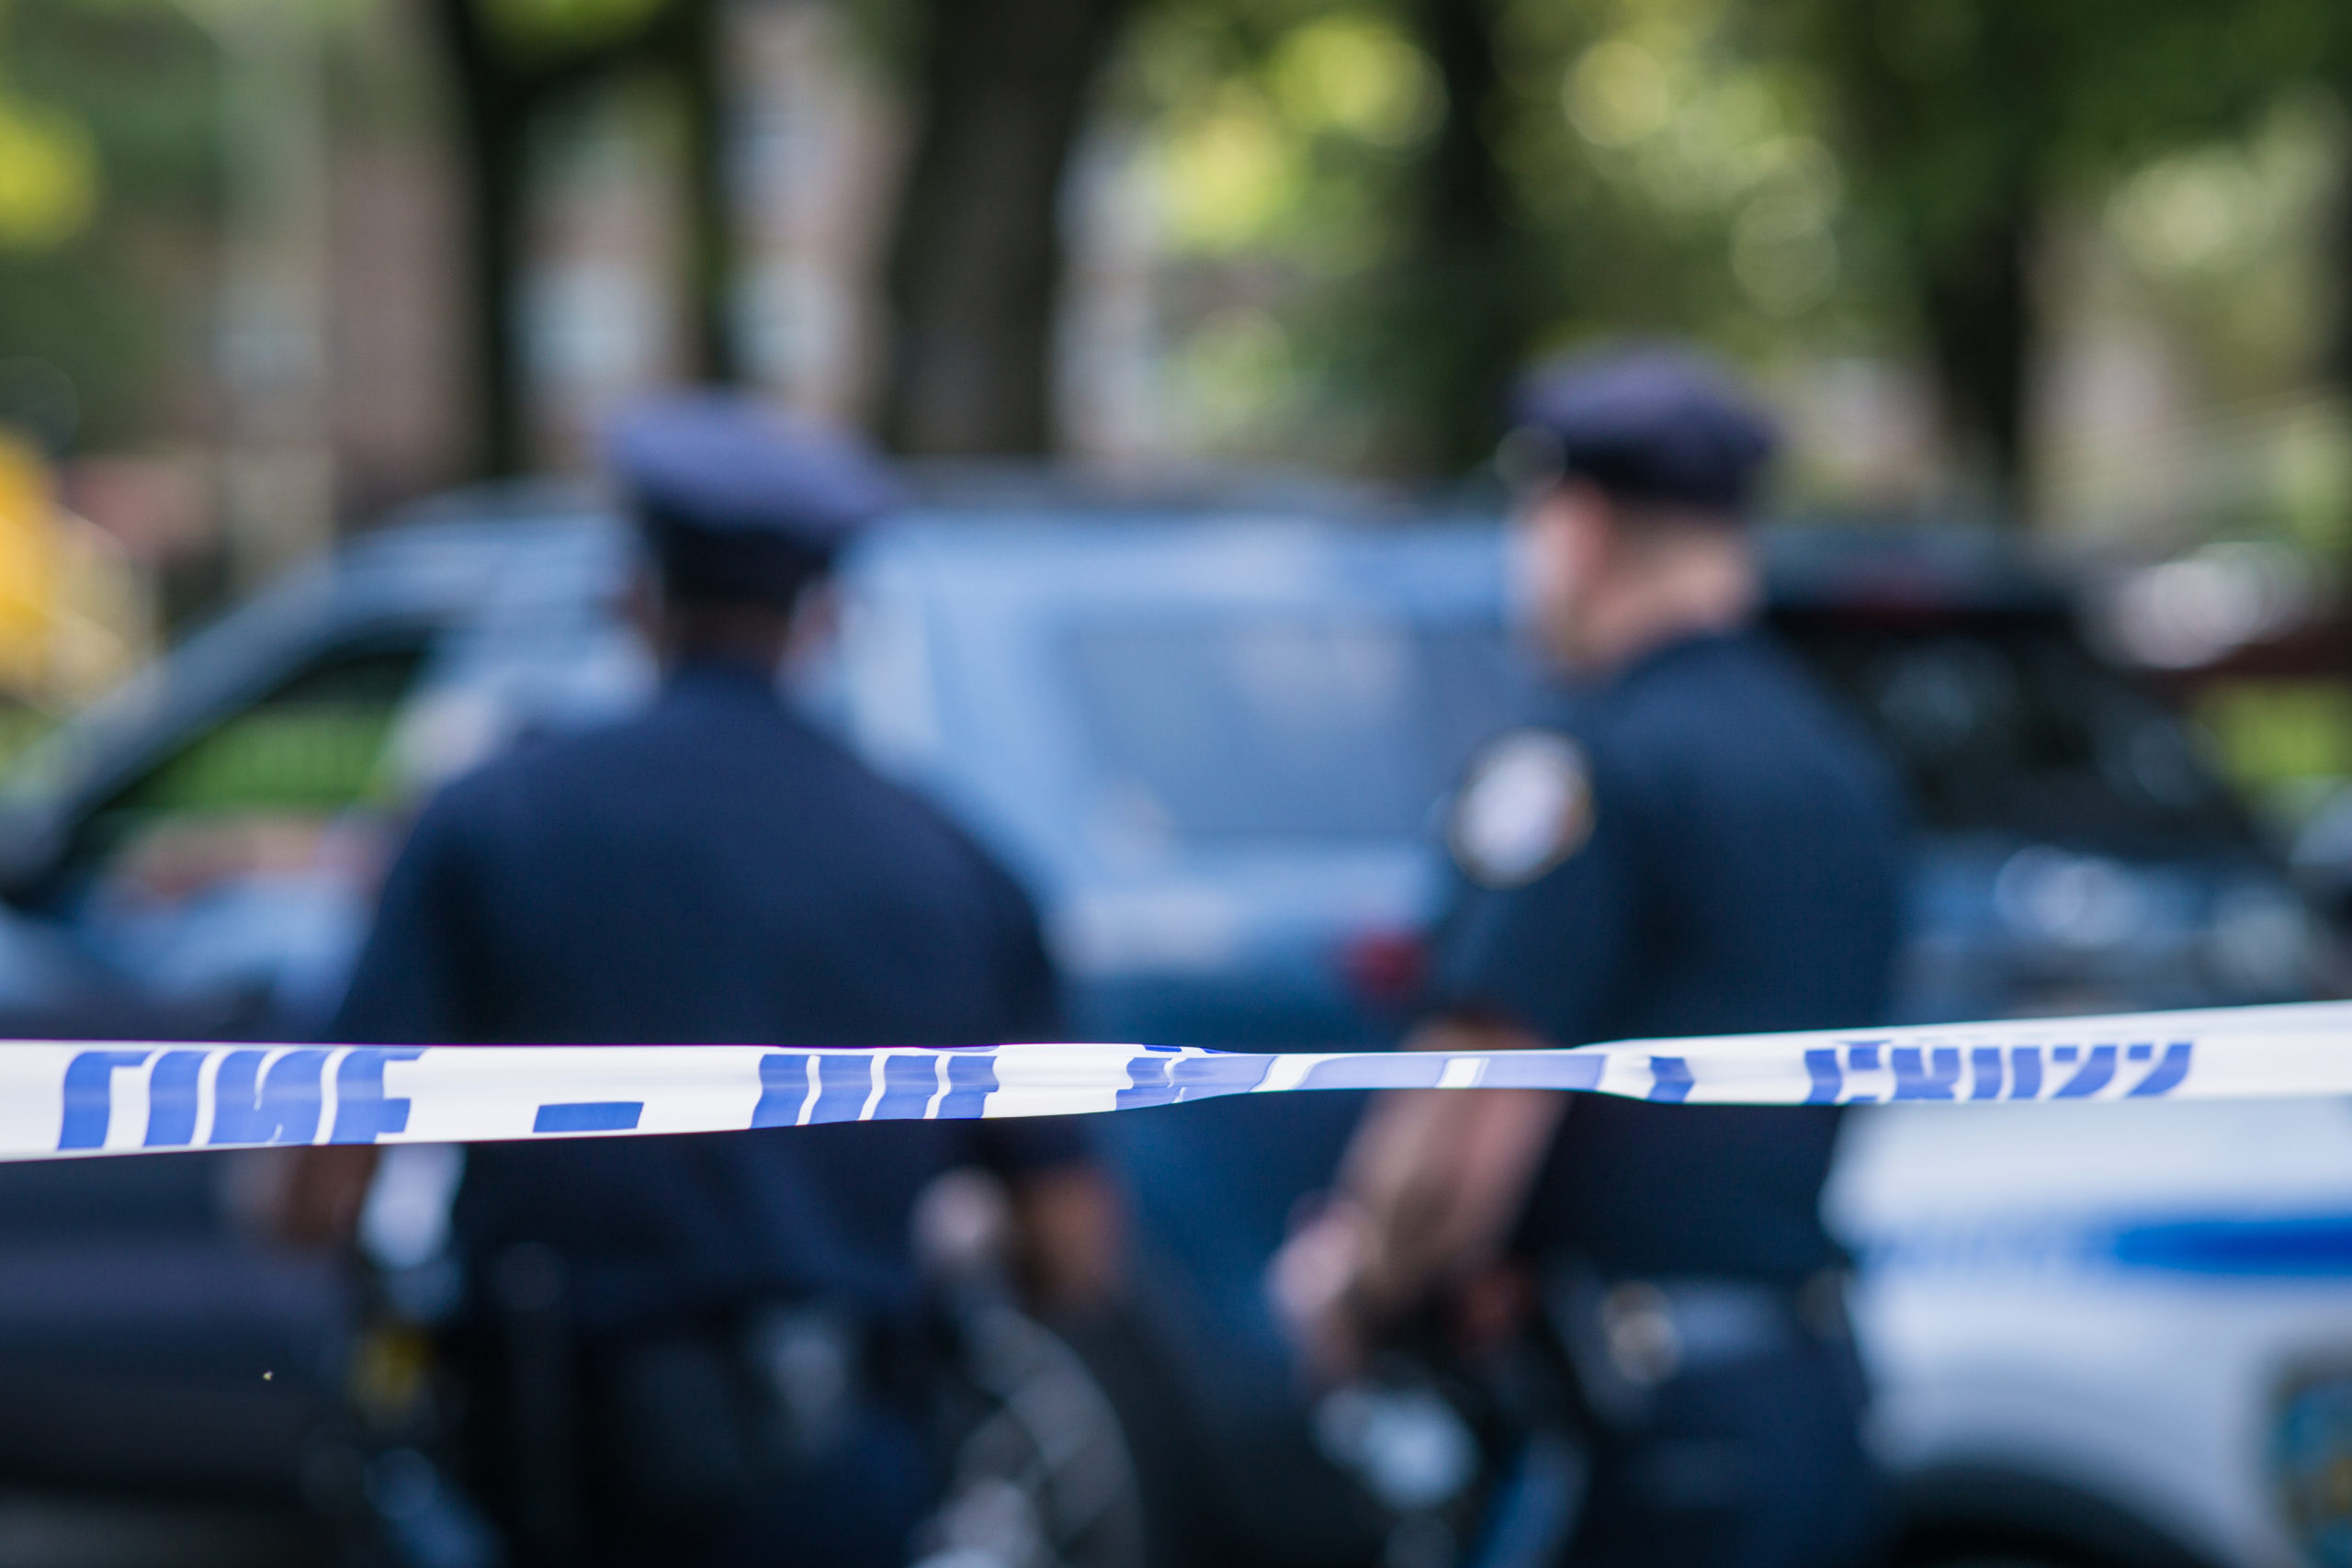 Off-duty cop shoots her girlfriend & kills another woman in apparent love triangle